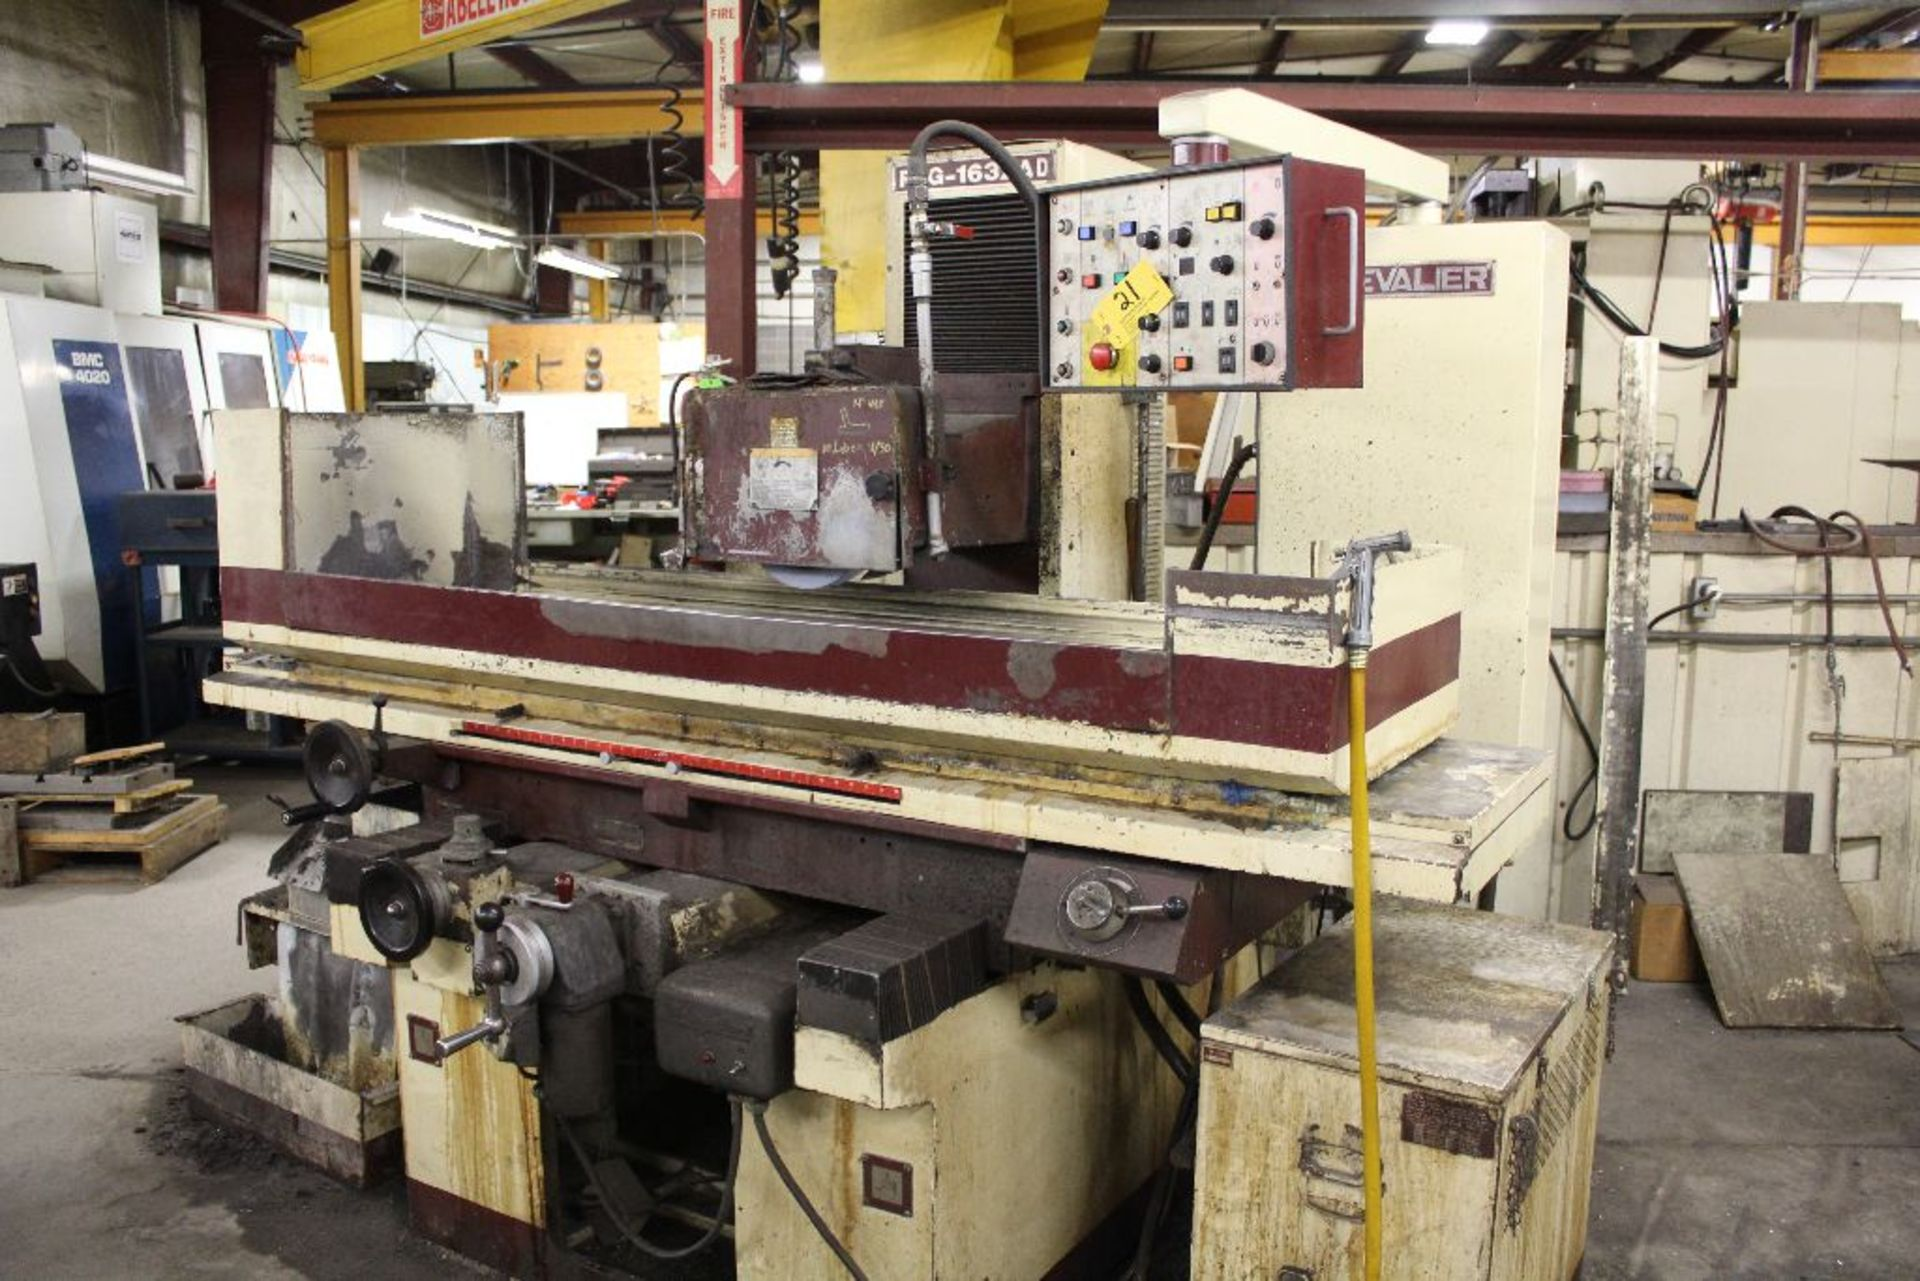 """Lot 021 - Chevalier surface grinder, model FSG1632AD, sn G3847001, 32"""" x 16"""" magnetic chuck."""